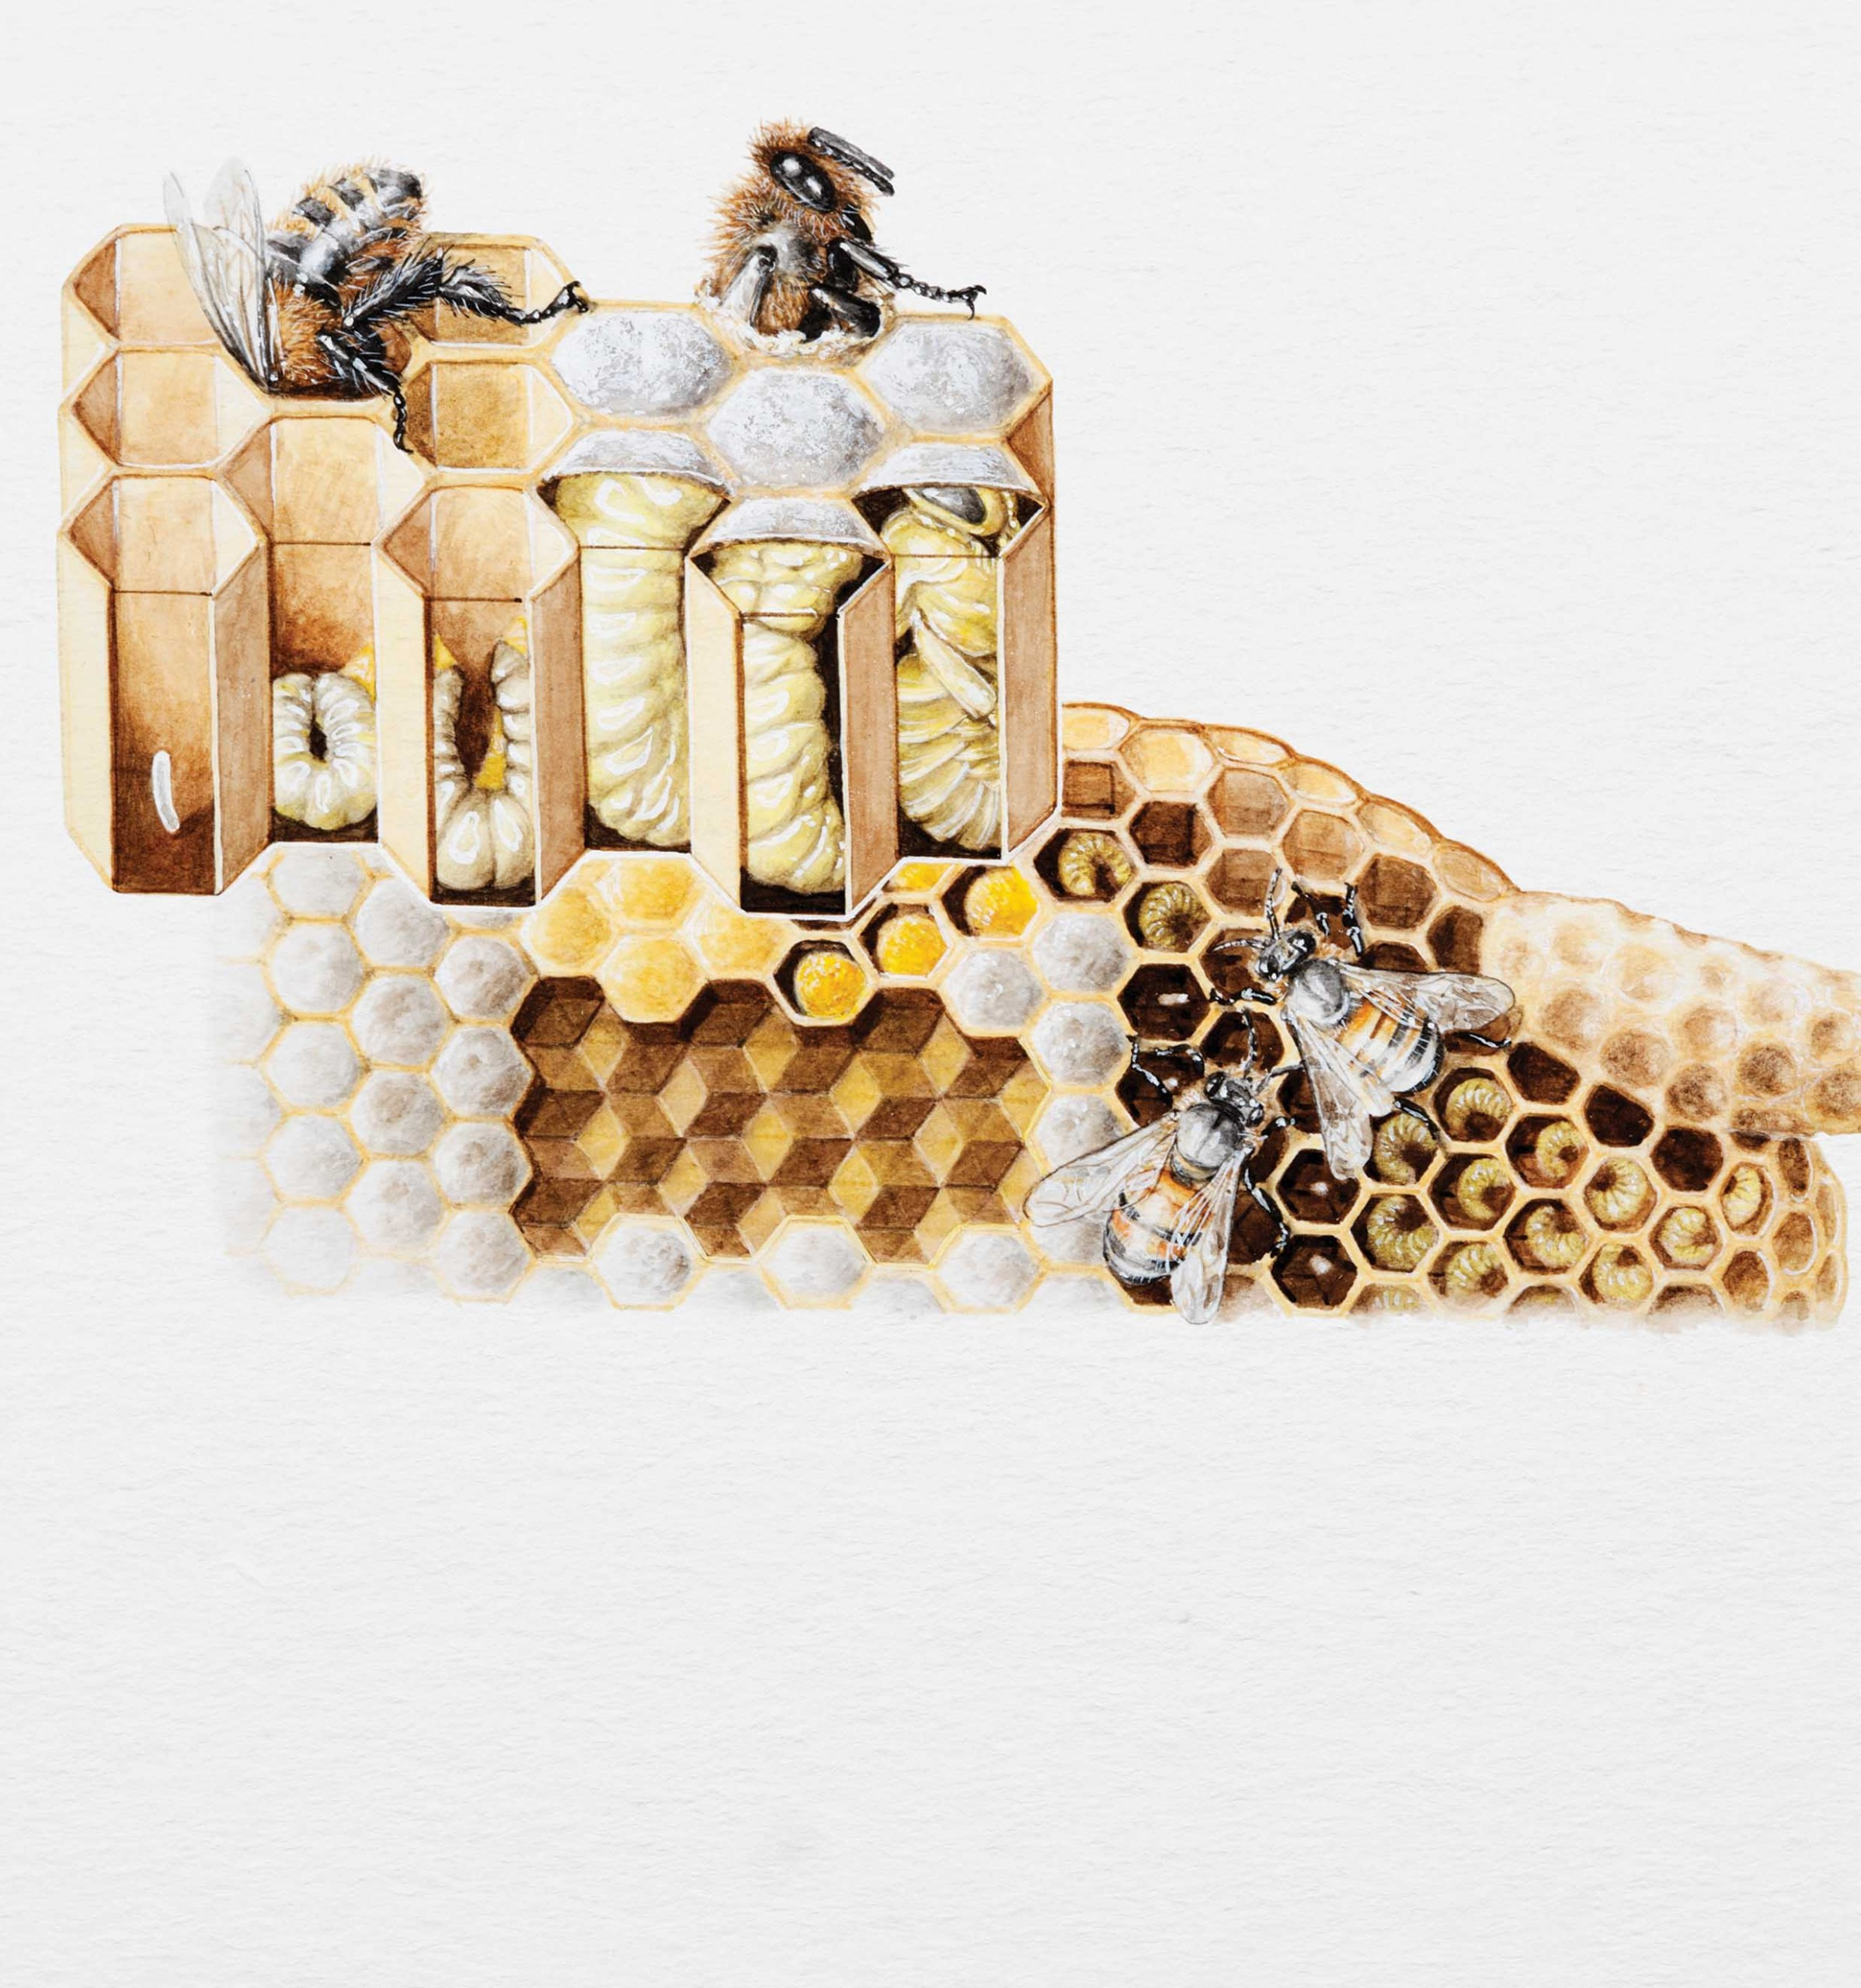 Bees Lifecycle